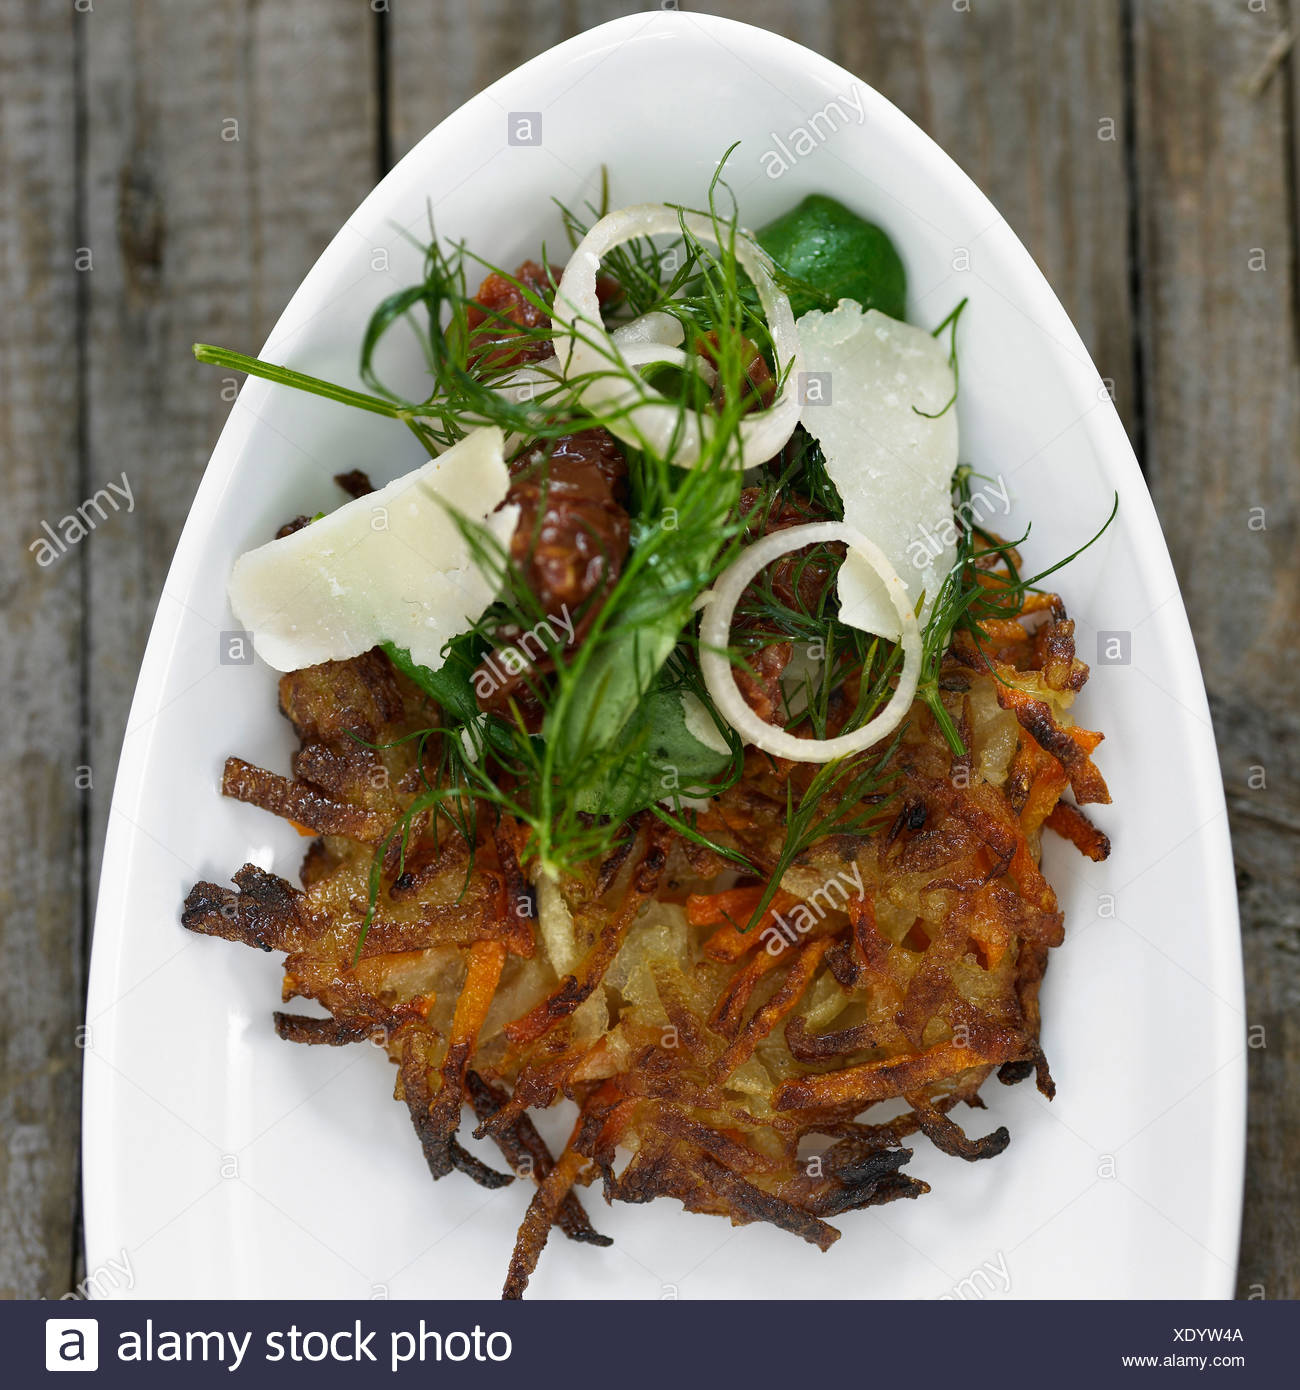 Plate of potato pancake with toppings - Stock Image